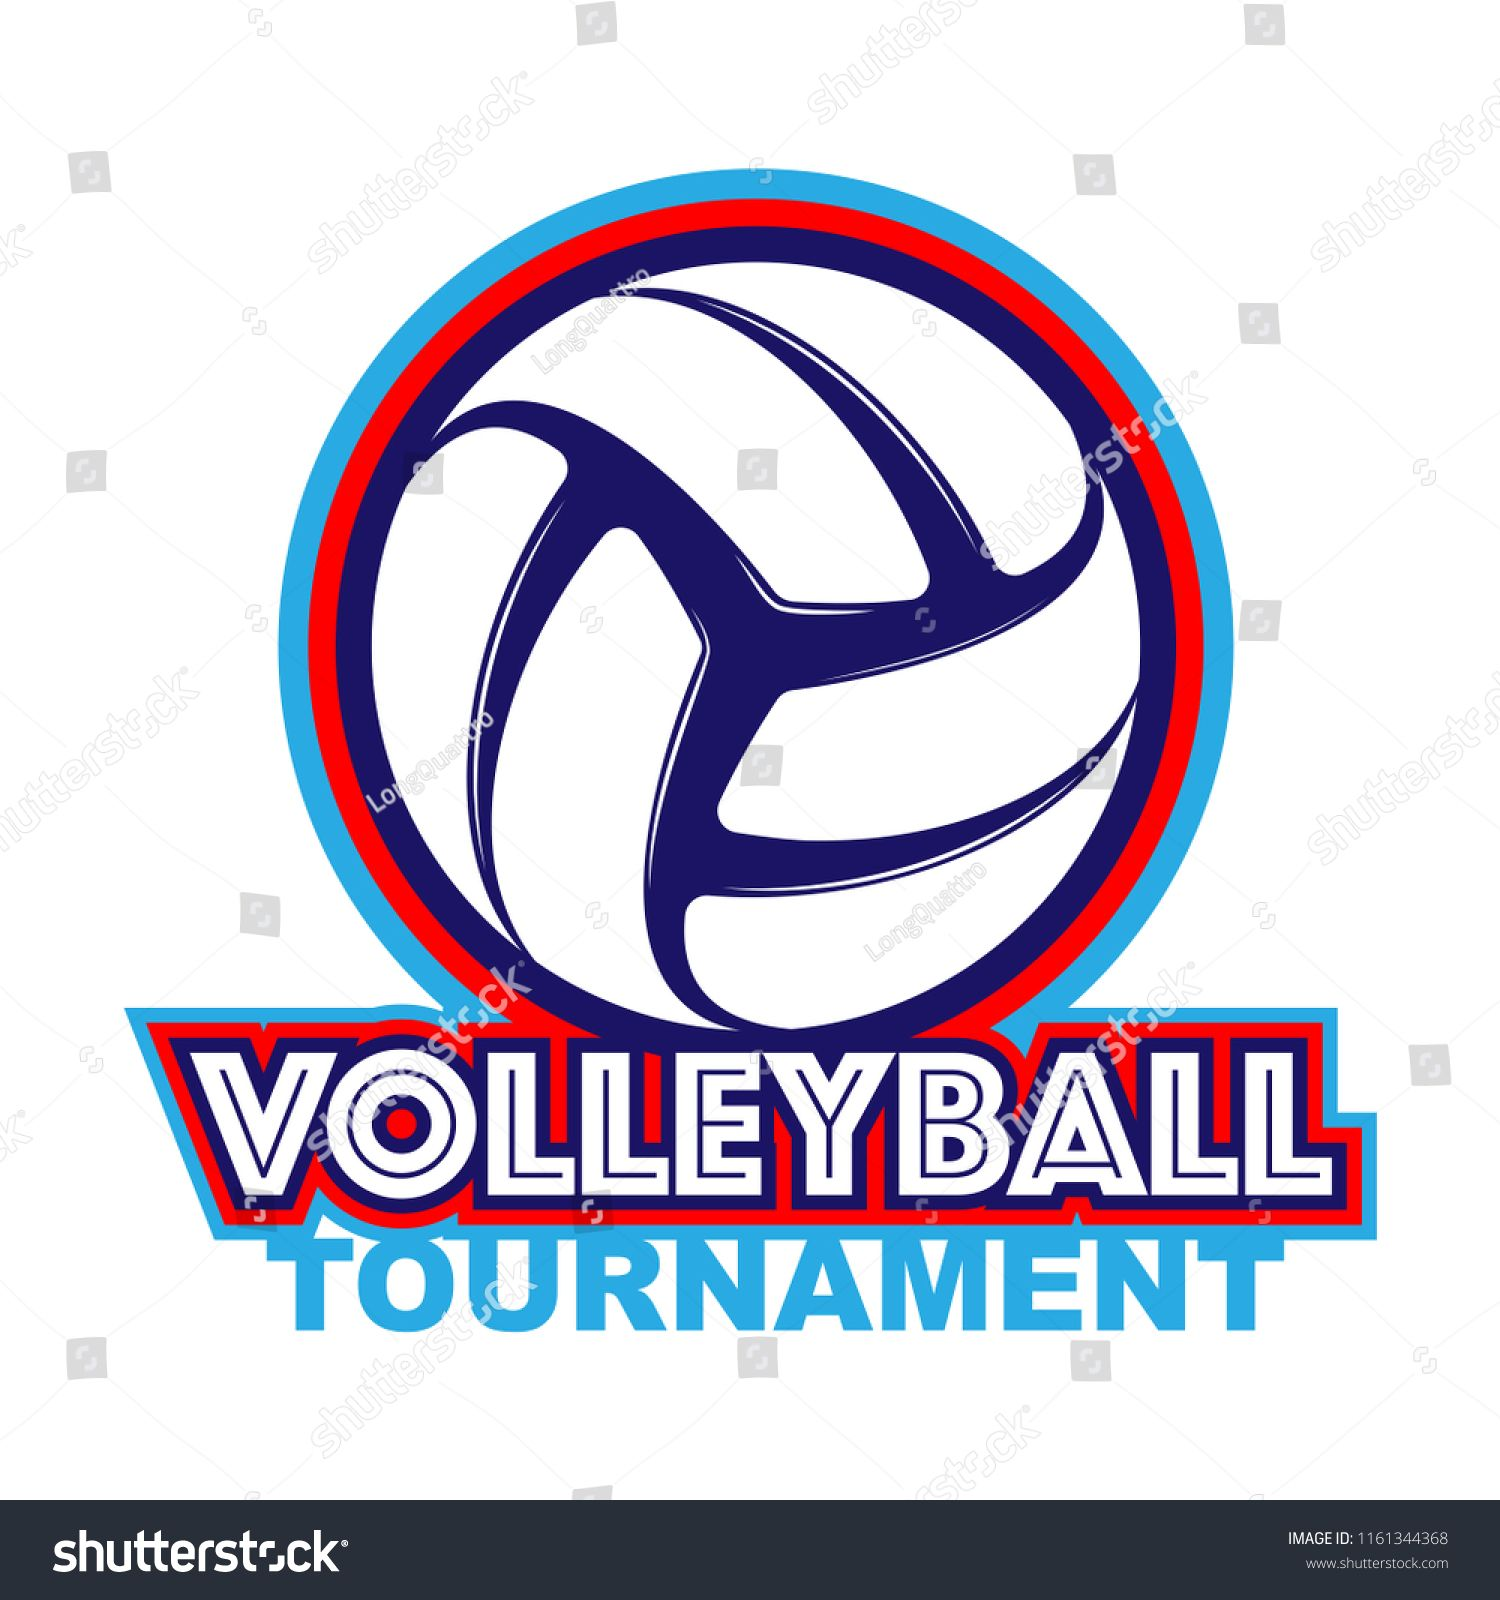 Abstract Volleyball Symbol With Sample Tournament Text Isolated On White Background Ad Ad Symbol Sample Abstract Volleyball Text Symbols Abstract